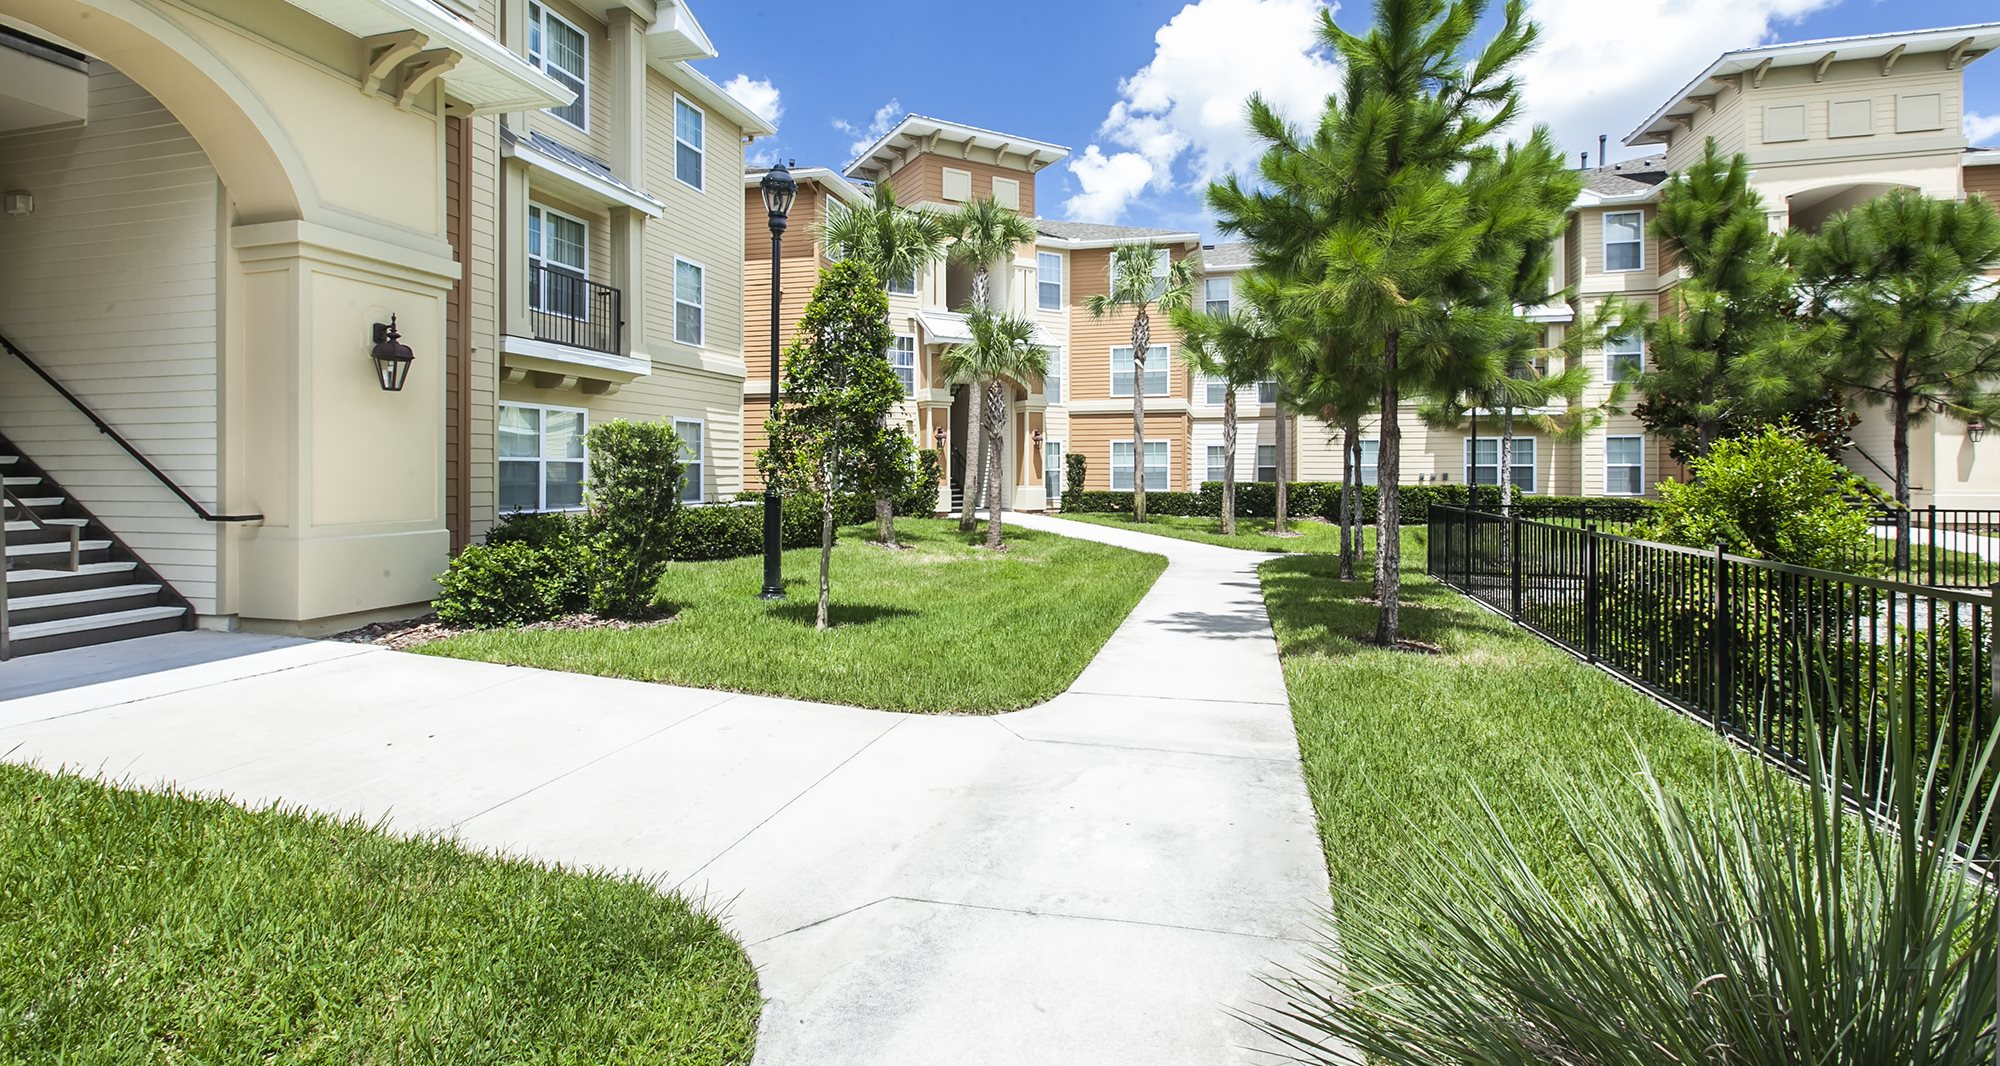 Taylor Place Apartments for rent in Deland, FL. Make this community your new home or visit other Concord Rents communities at ConcordRents.com. Building exterior